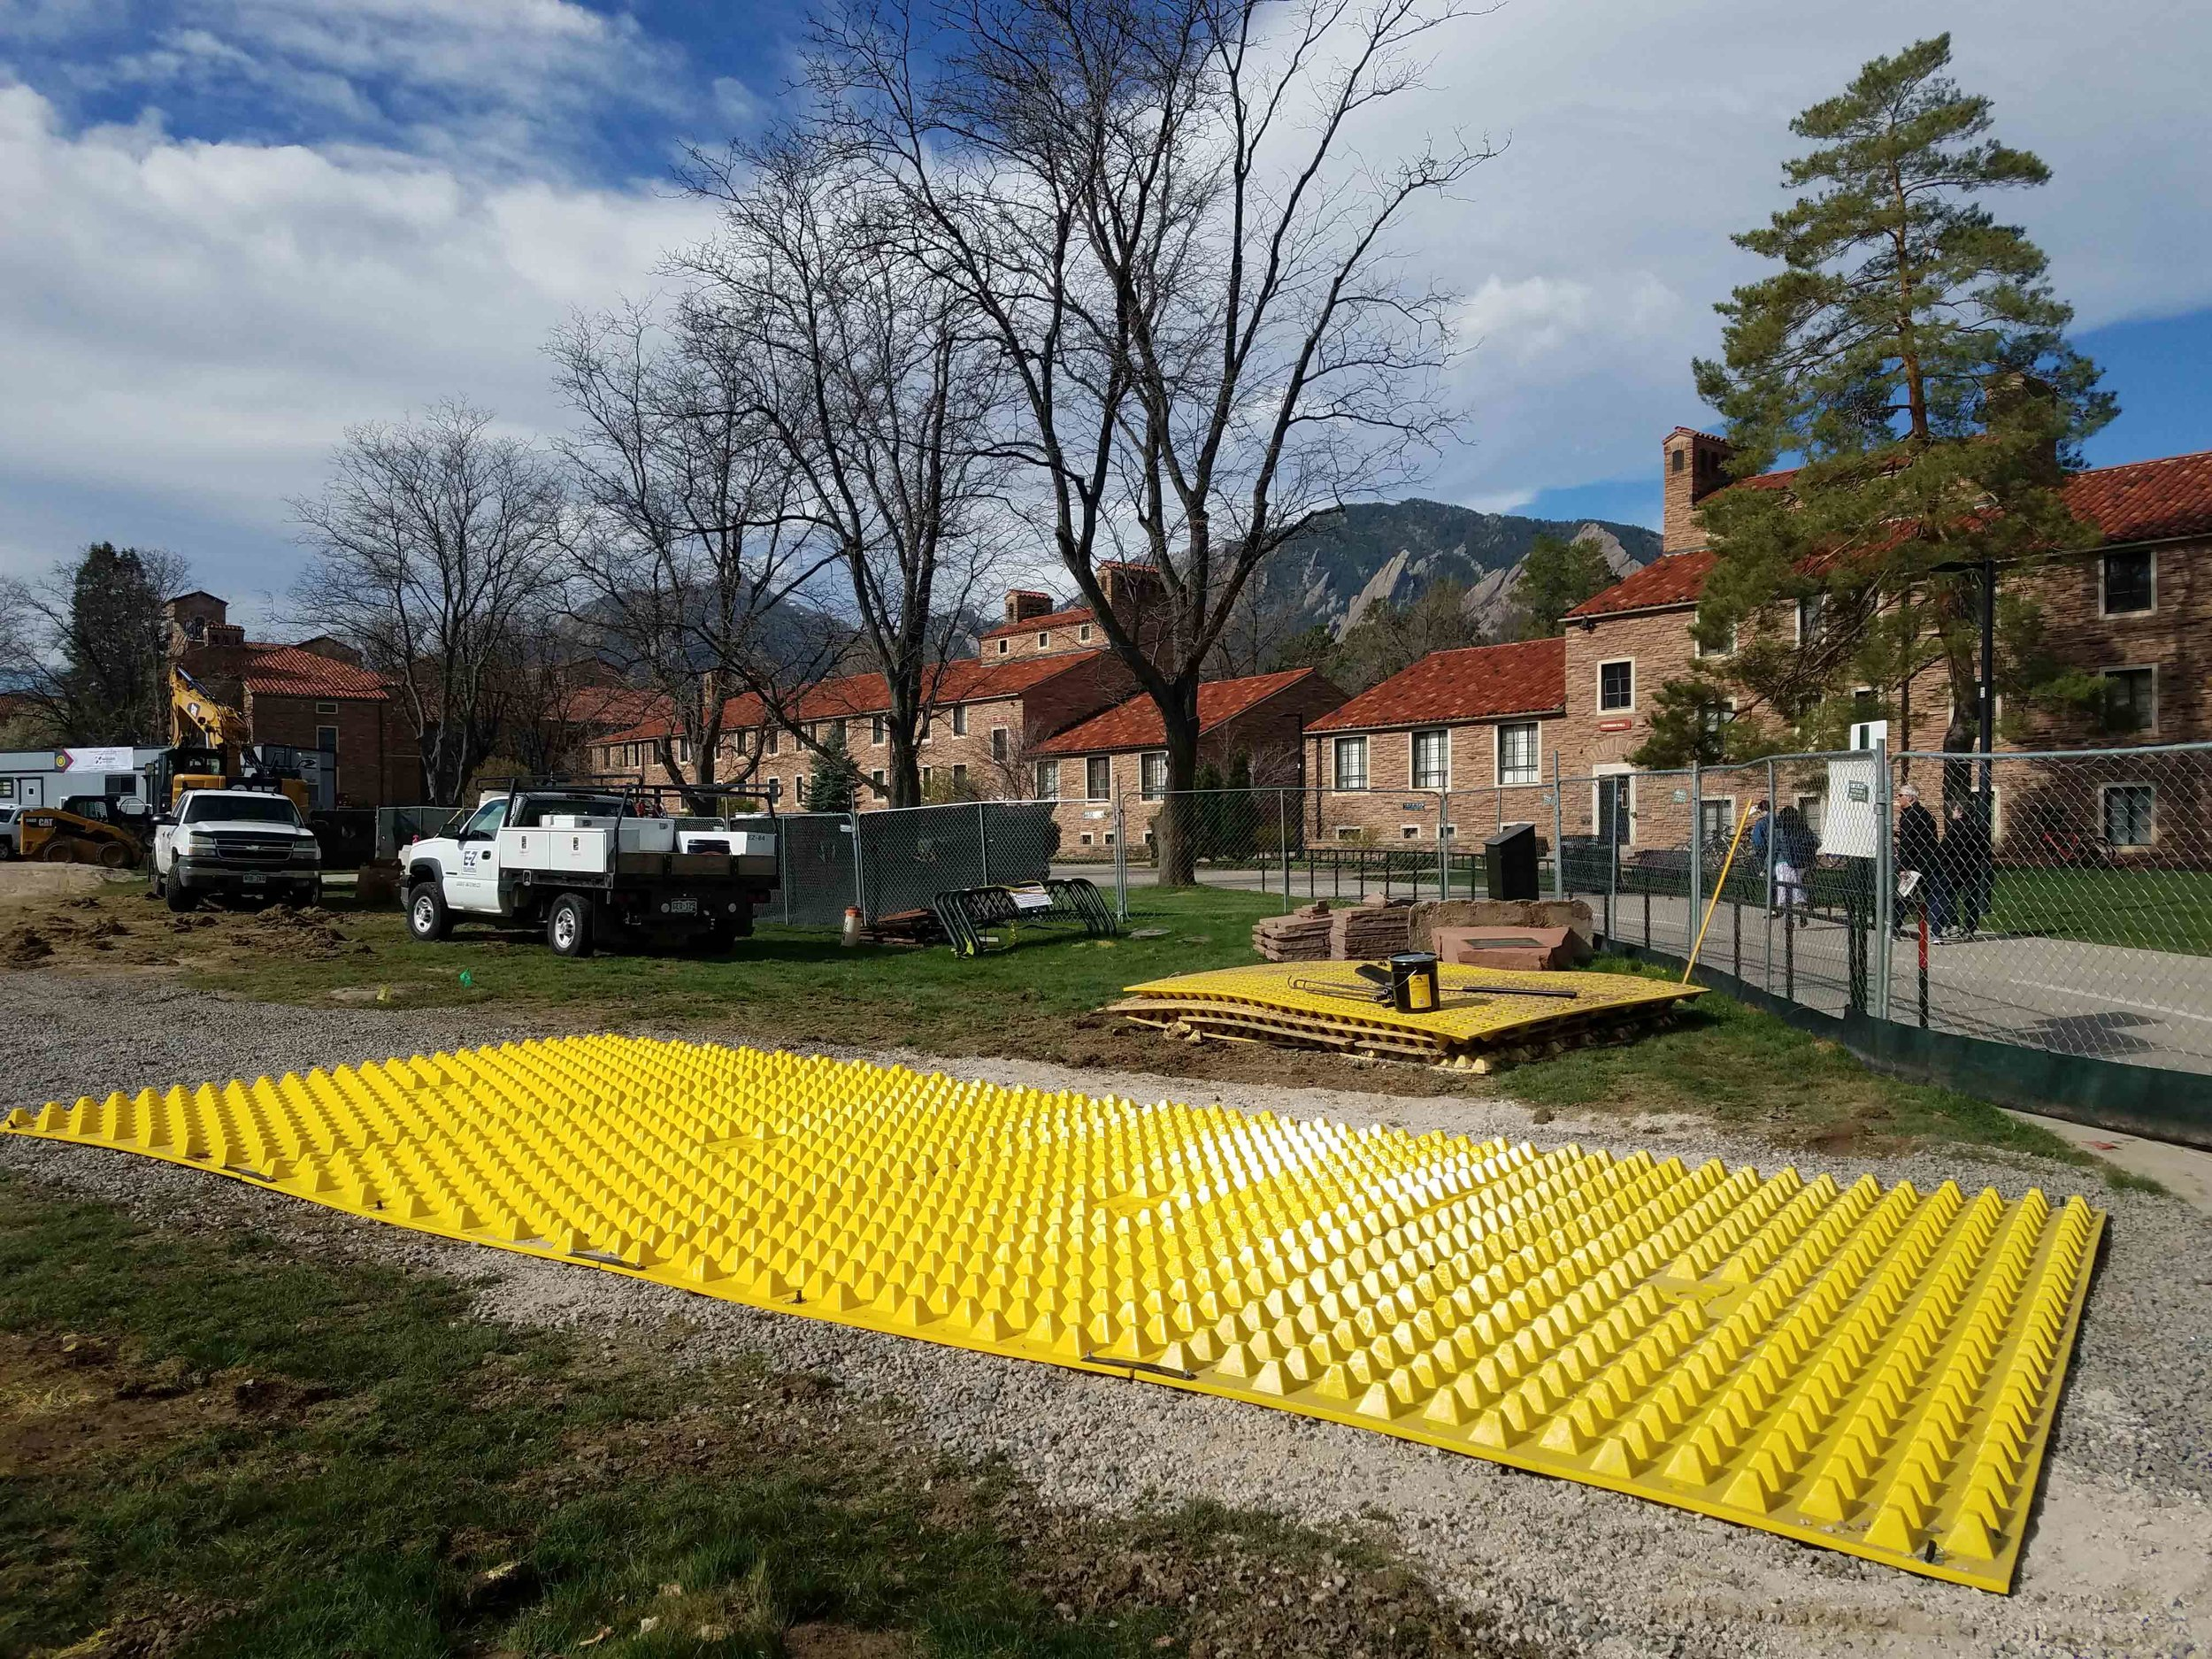 FODS_CUEngineeringBusiness_expansionProjects_FODSTrackoutControlSystem_ConstructionEntranceConstructionExit_mudMats_yellowPlasticConstructionMats_wheelwash_rumbleGrate_geotextileConstructionEntrance.jpg